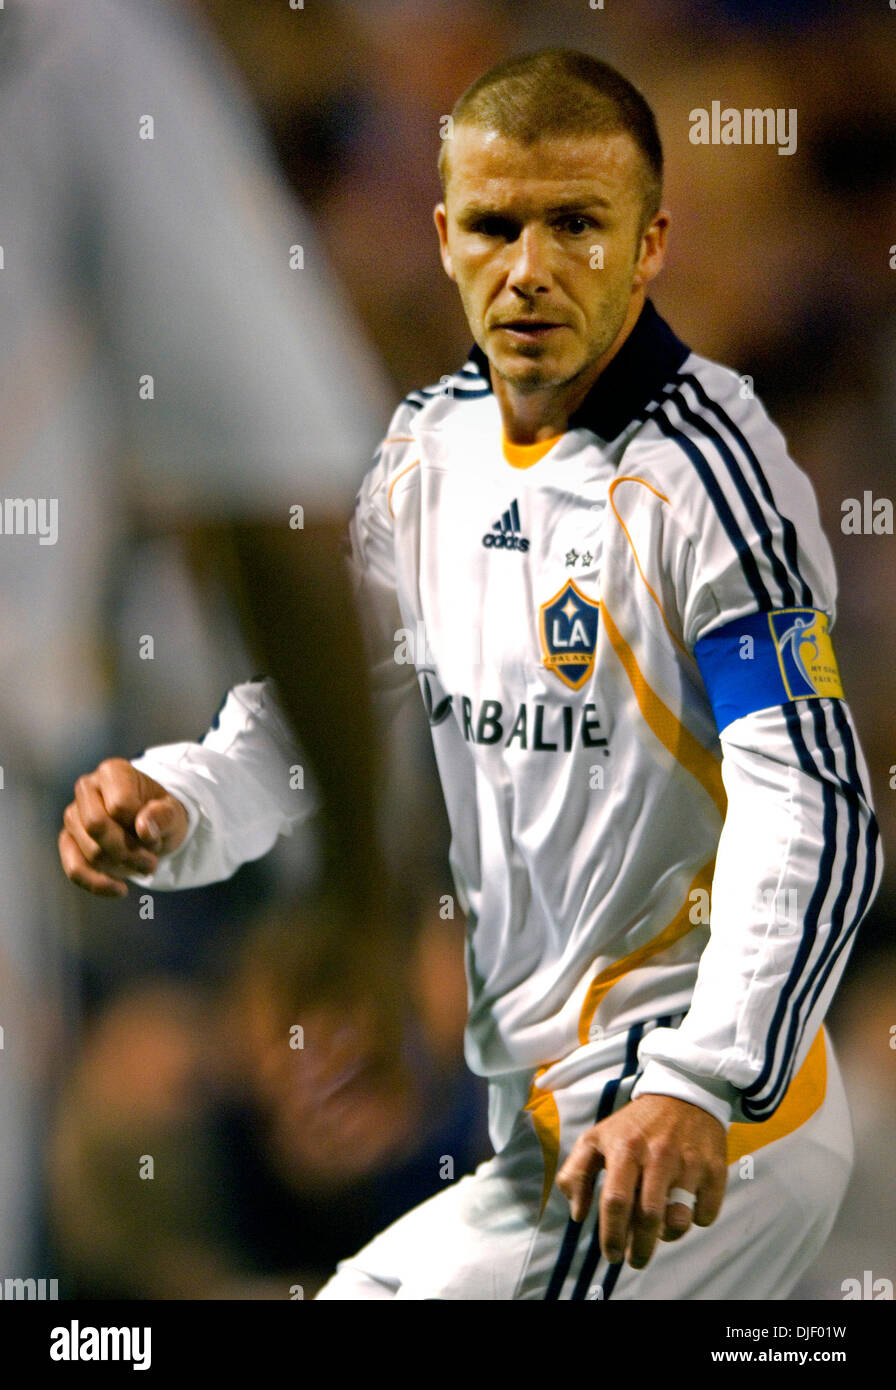 Nov 11, 2007 - Minneapolis, Minnesota, USA - DAVID BECKHAM during the game. (Credit Image: © Dave Brewster/Minneapolis Stock Photo